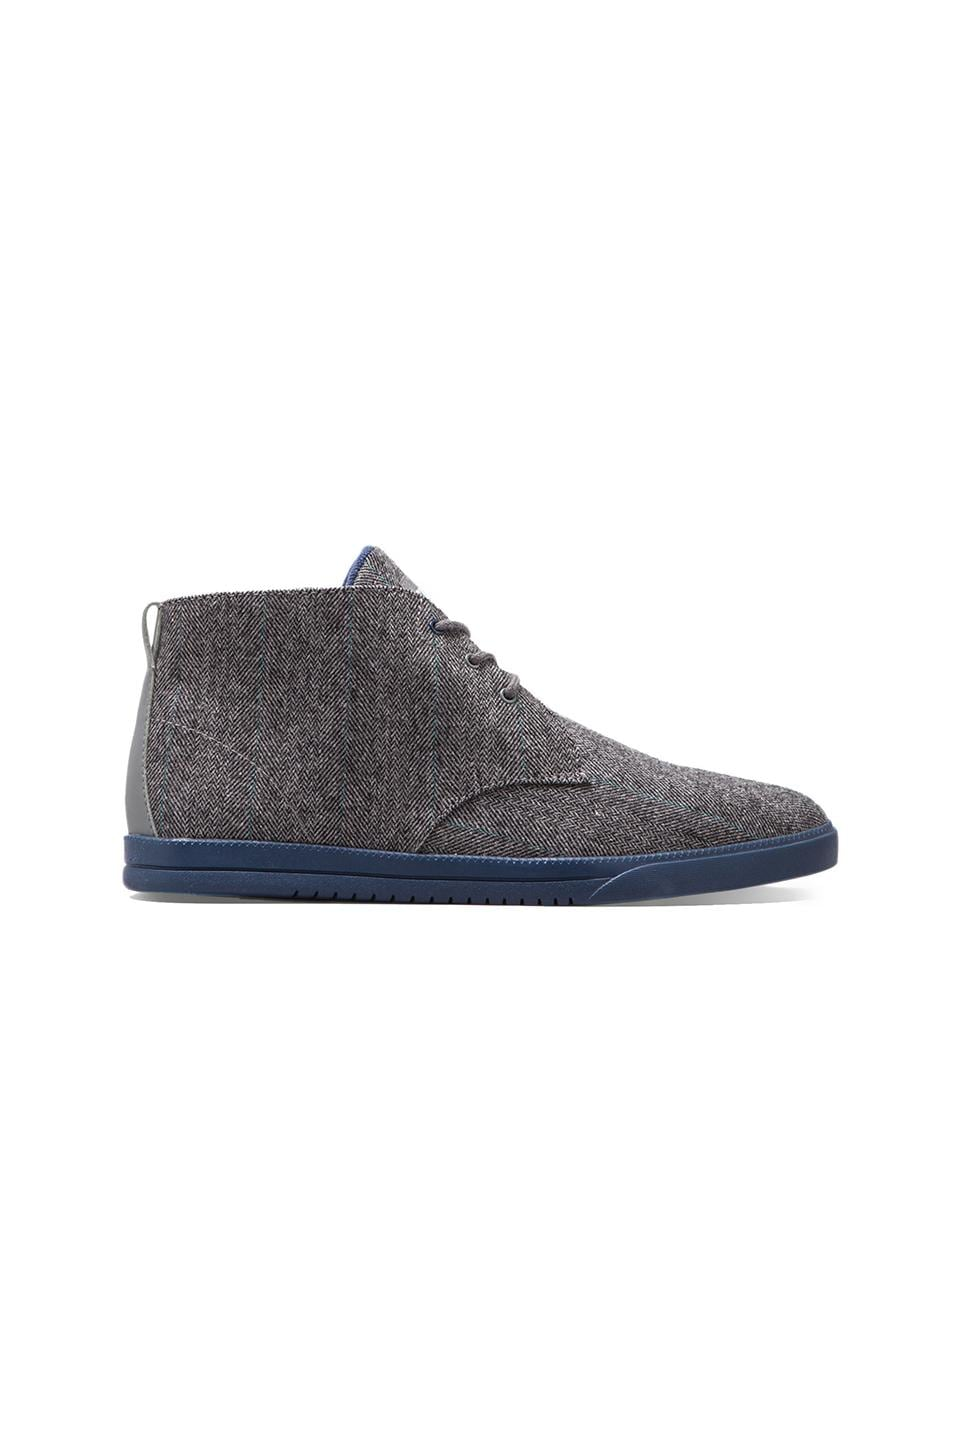 Clae Strayhorn Textile in Charcoal Wool Midnight